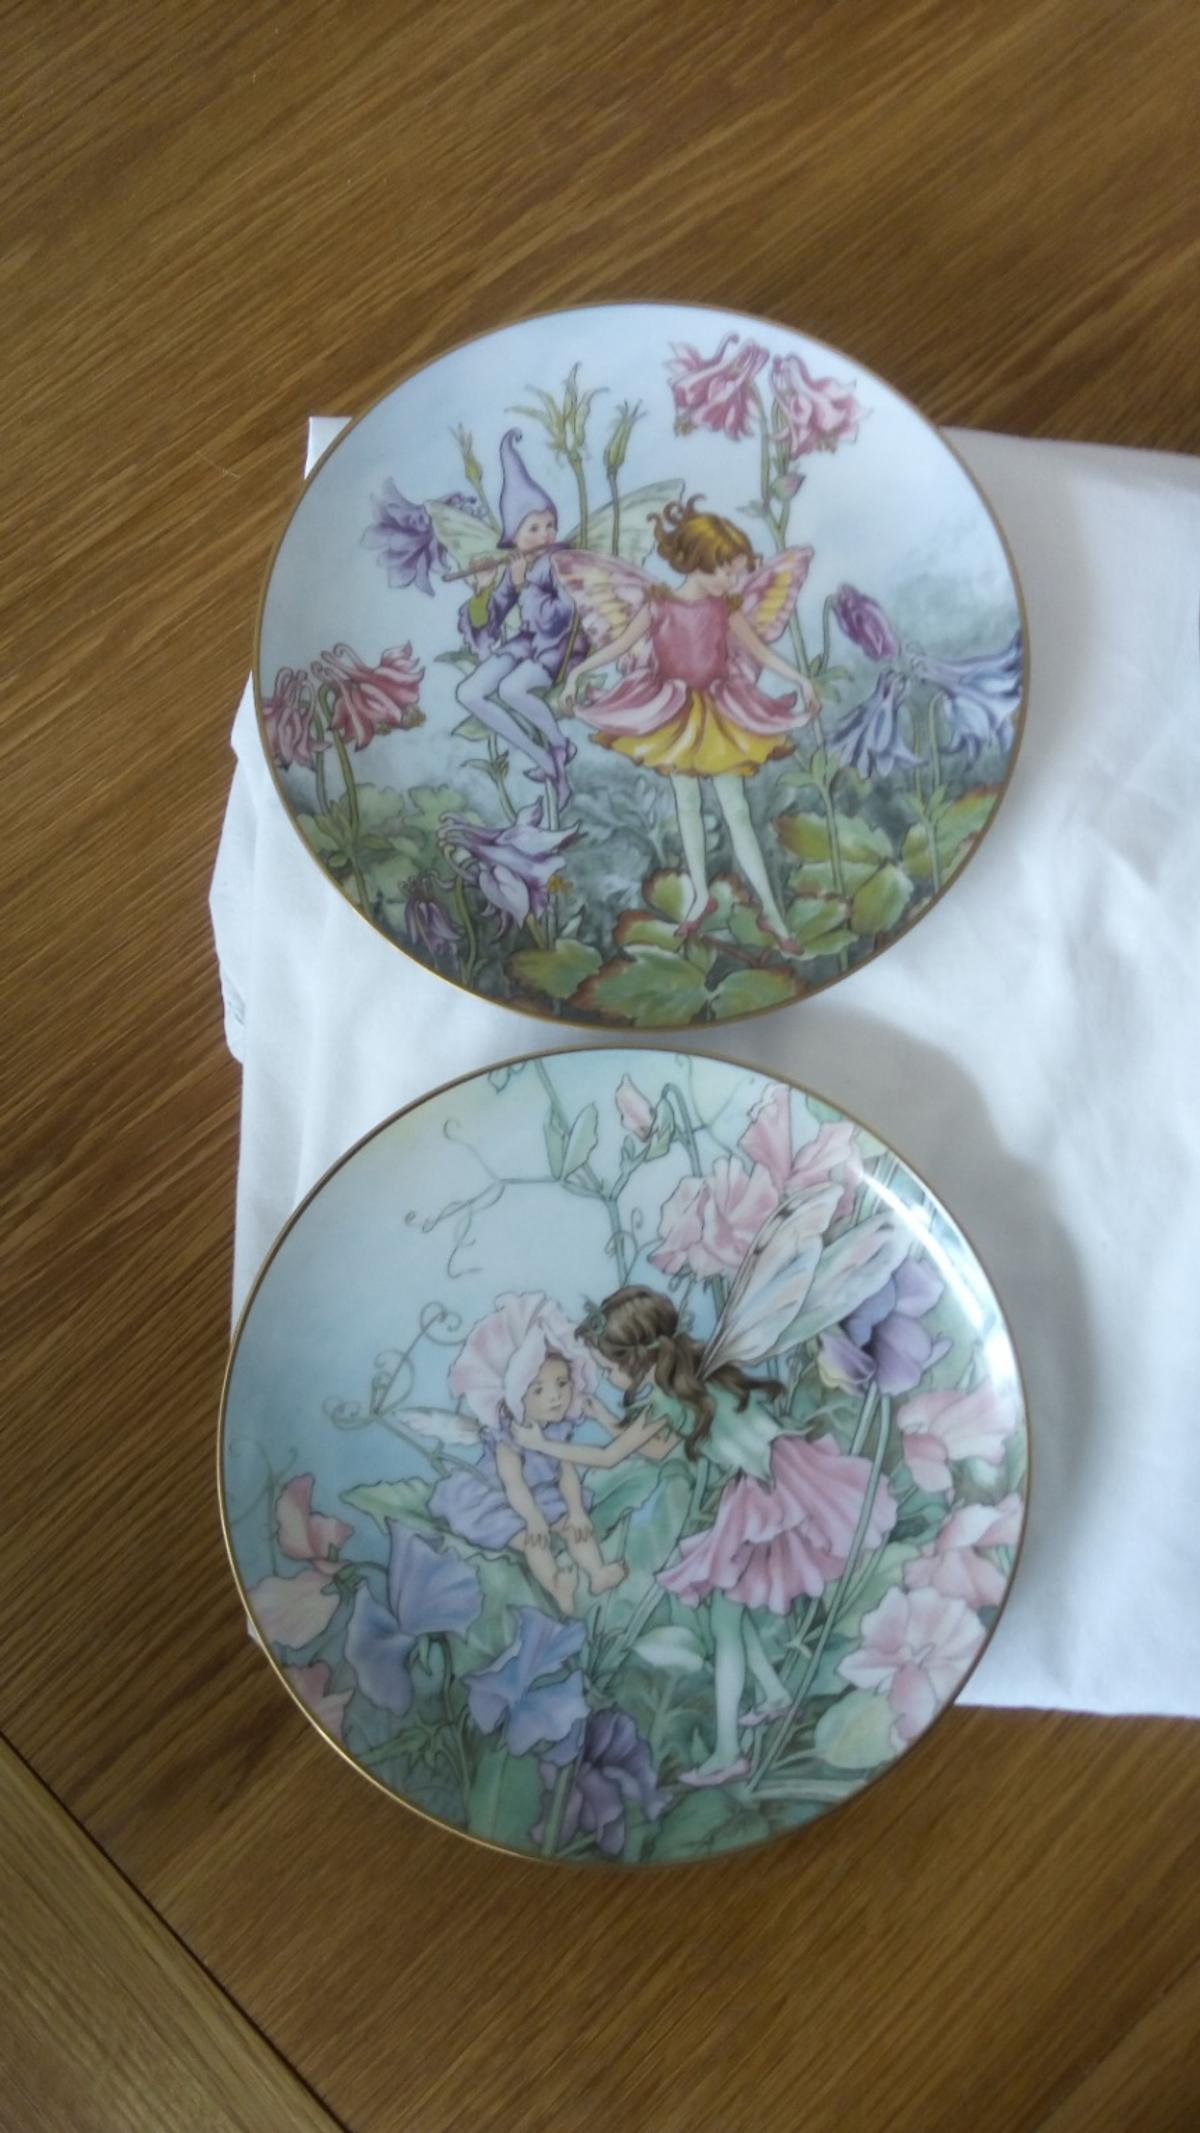 4x fairy plate,s. flower collection from Cicely Mary Barker. by Heinrich from Germany. the Candytuft.. the Blackthorn.. the Columbine.. the sweet pea. a rare collection. in perfect condition.. buyer must collect.